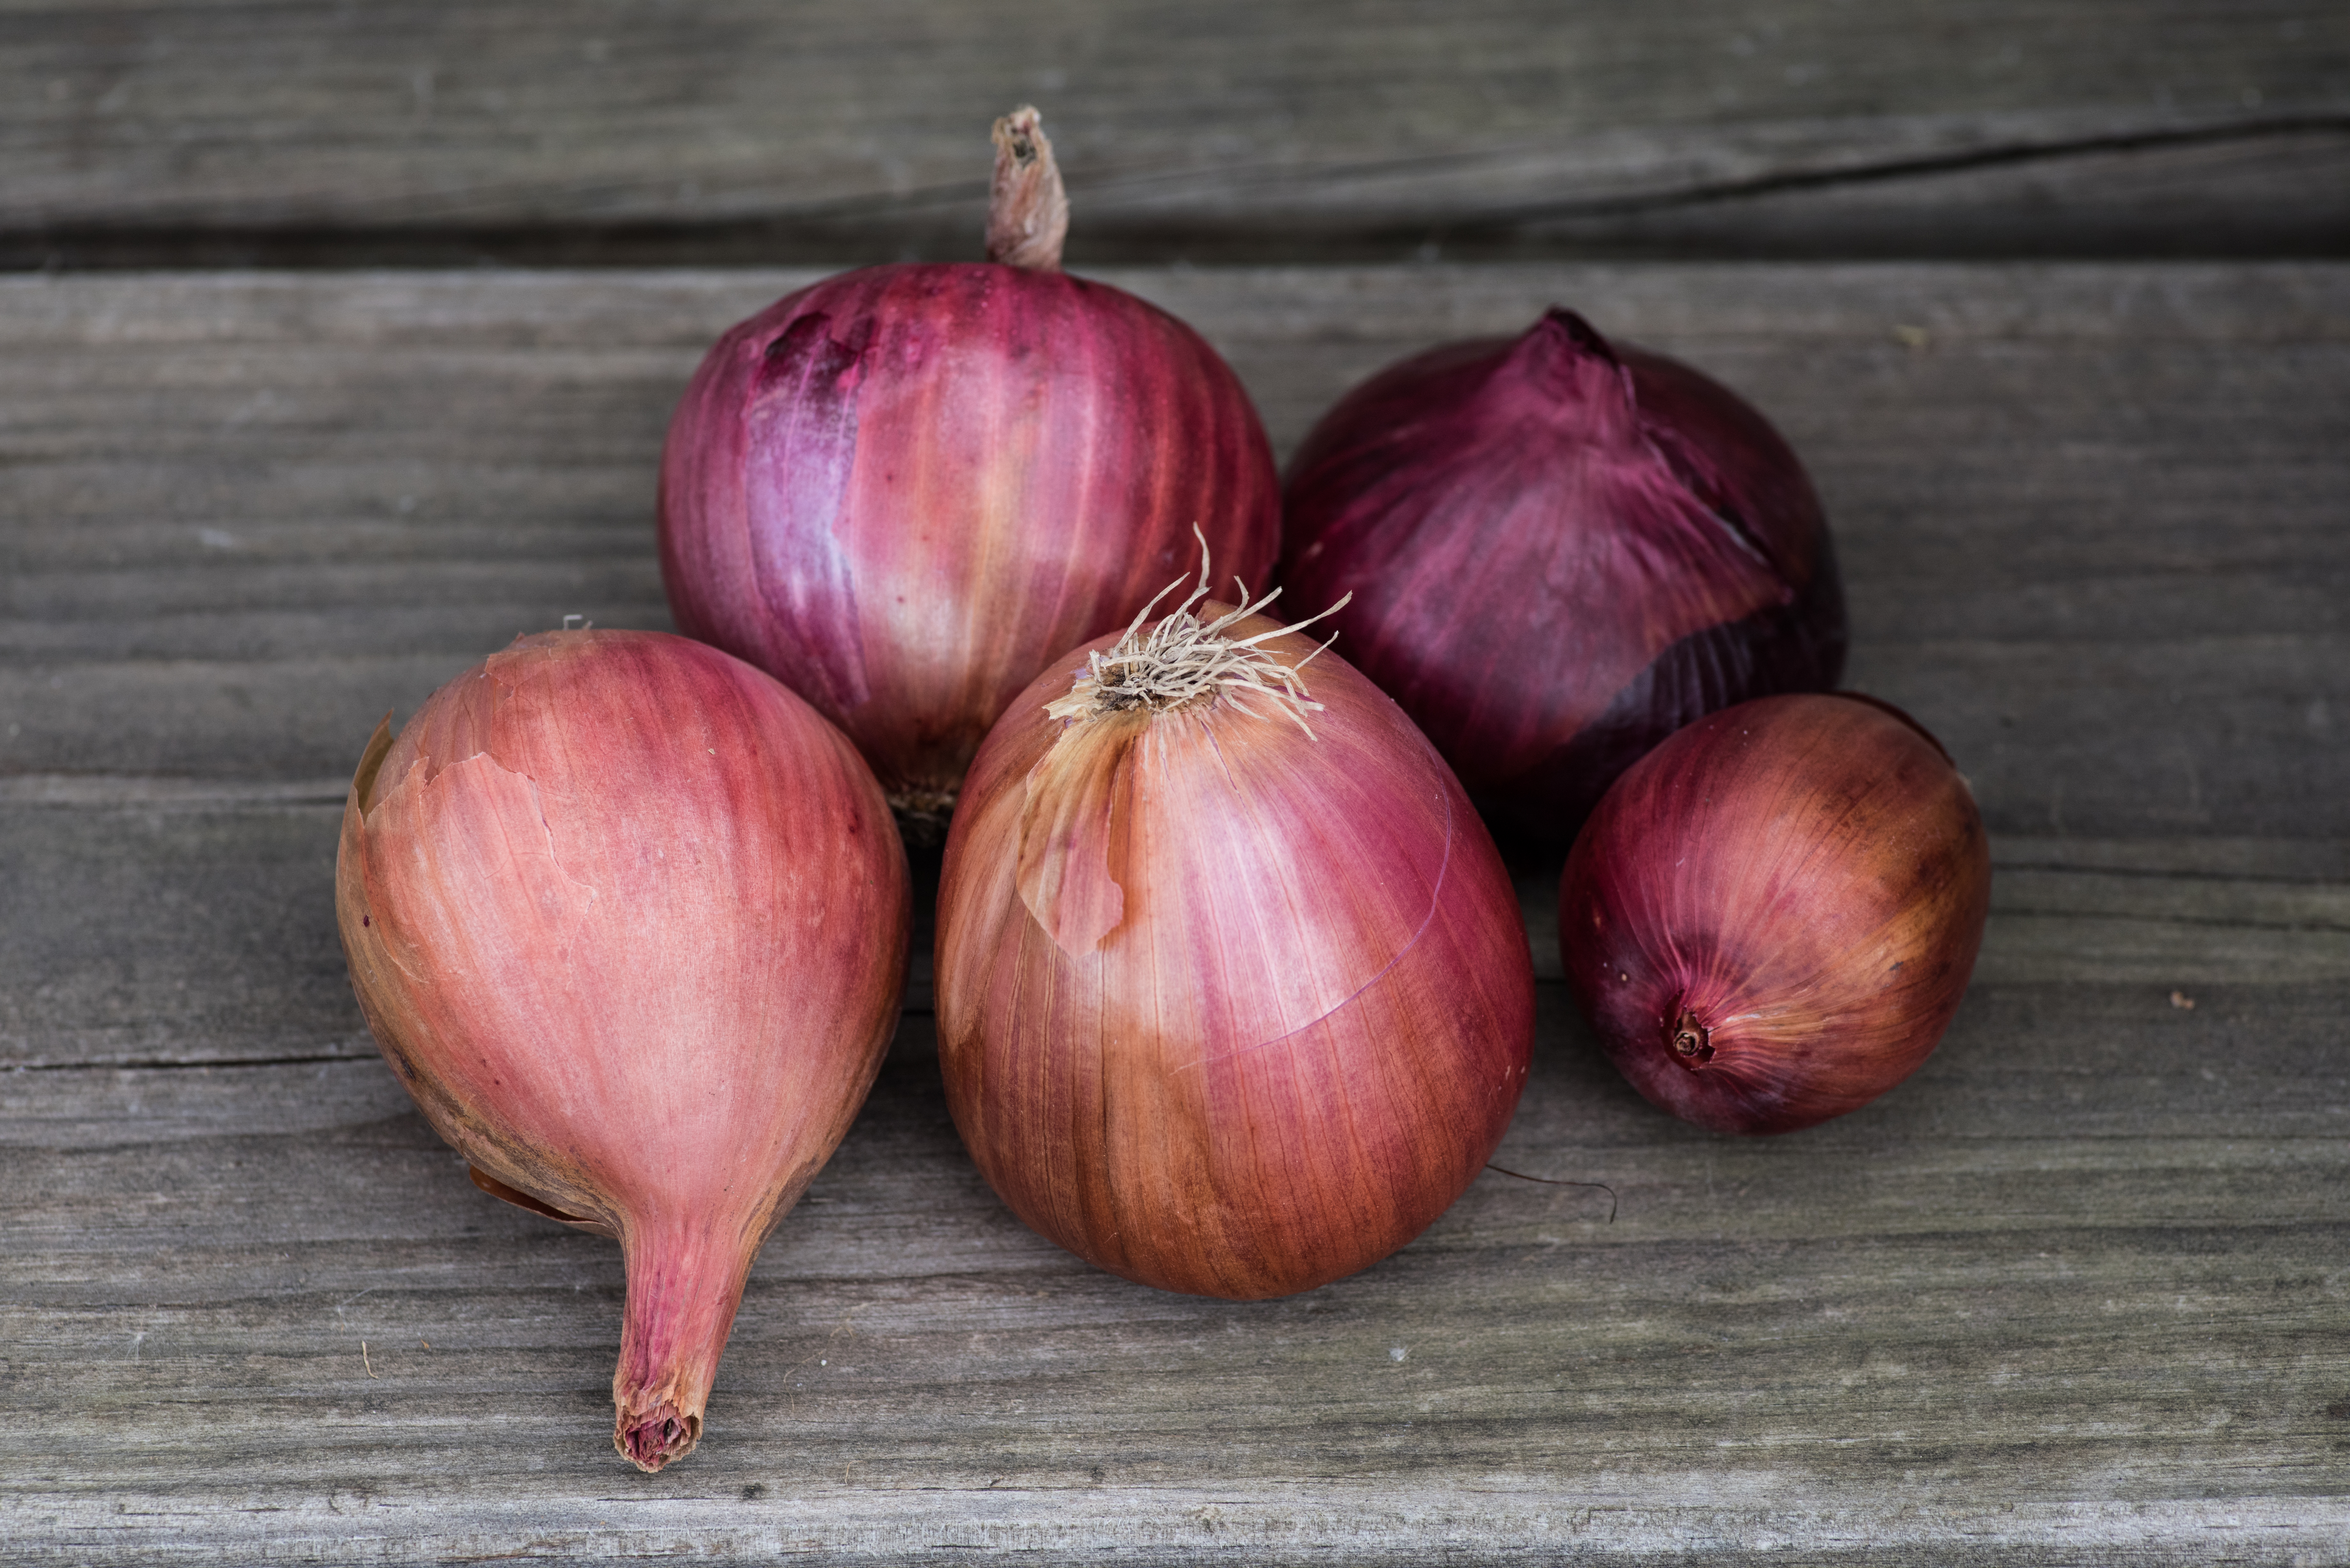 Variety of onions from Wozupi